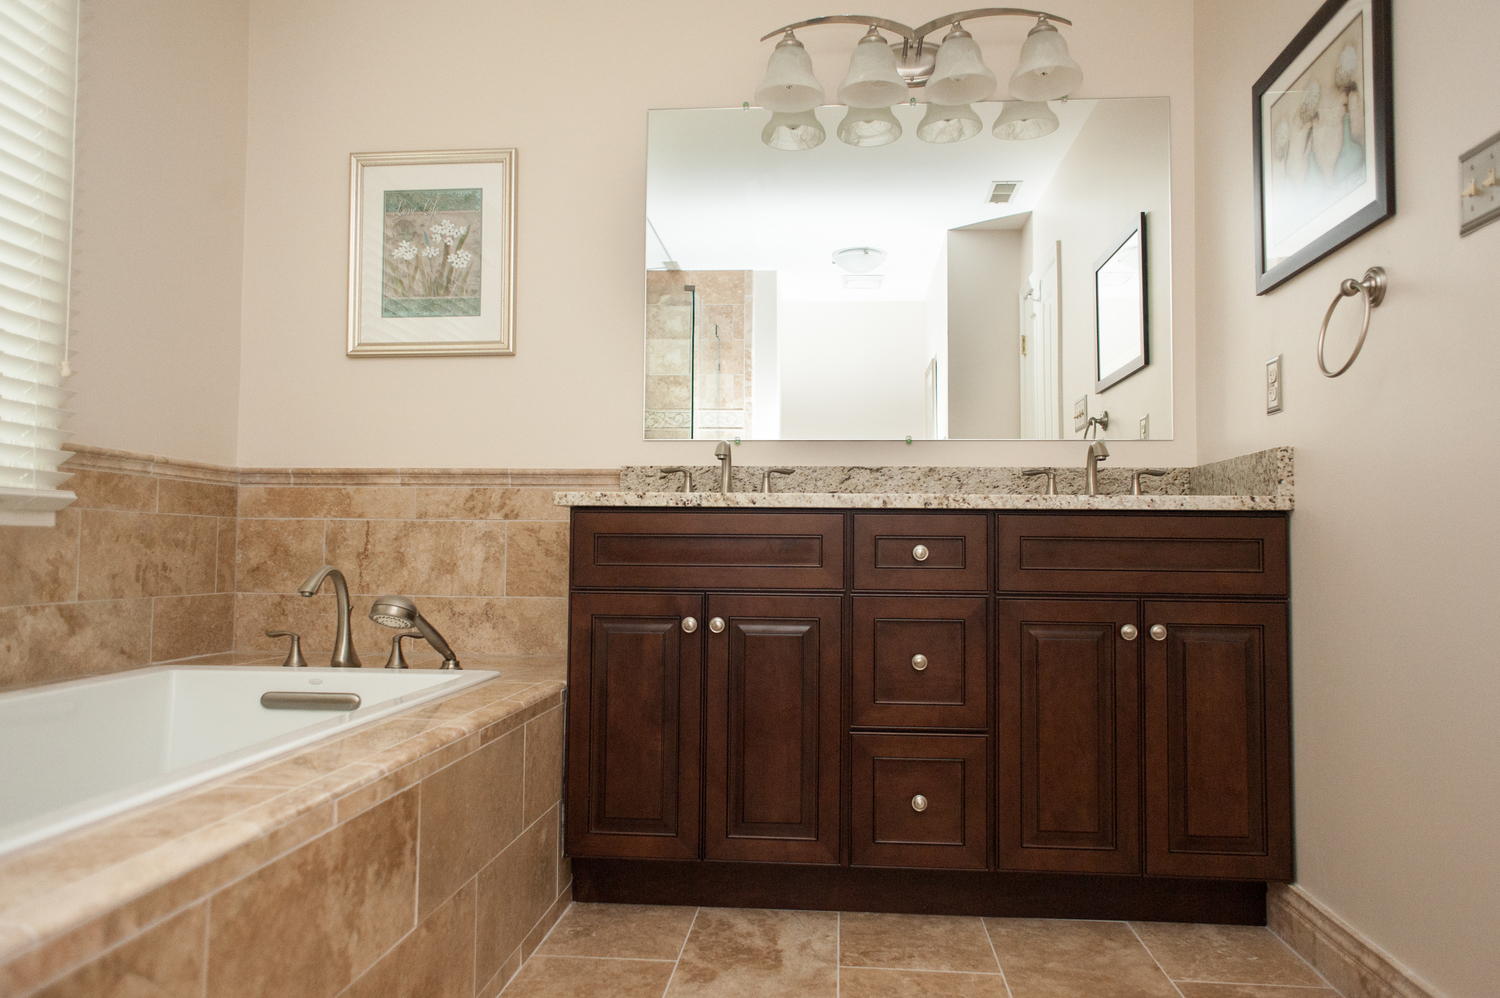 Bathroom+Remodel+Annapolis+MD.jpg